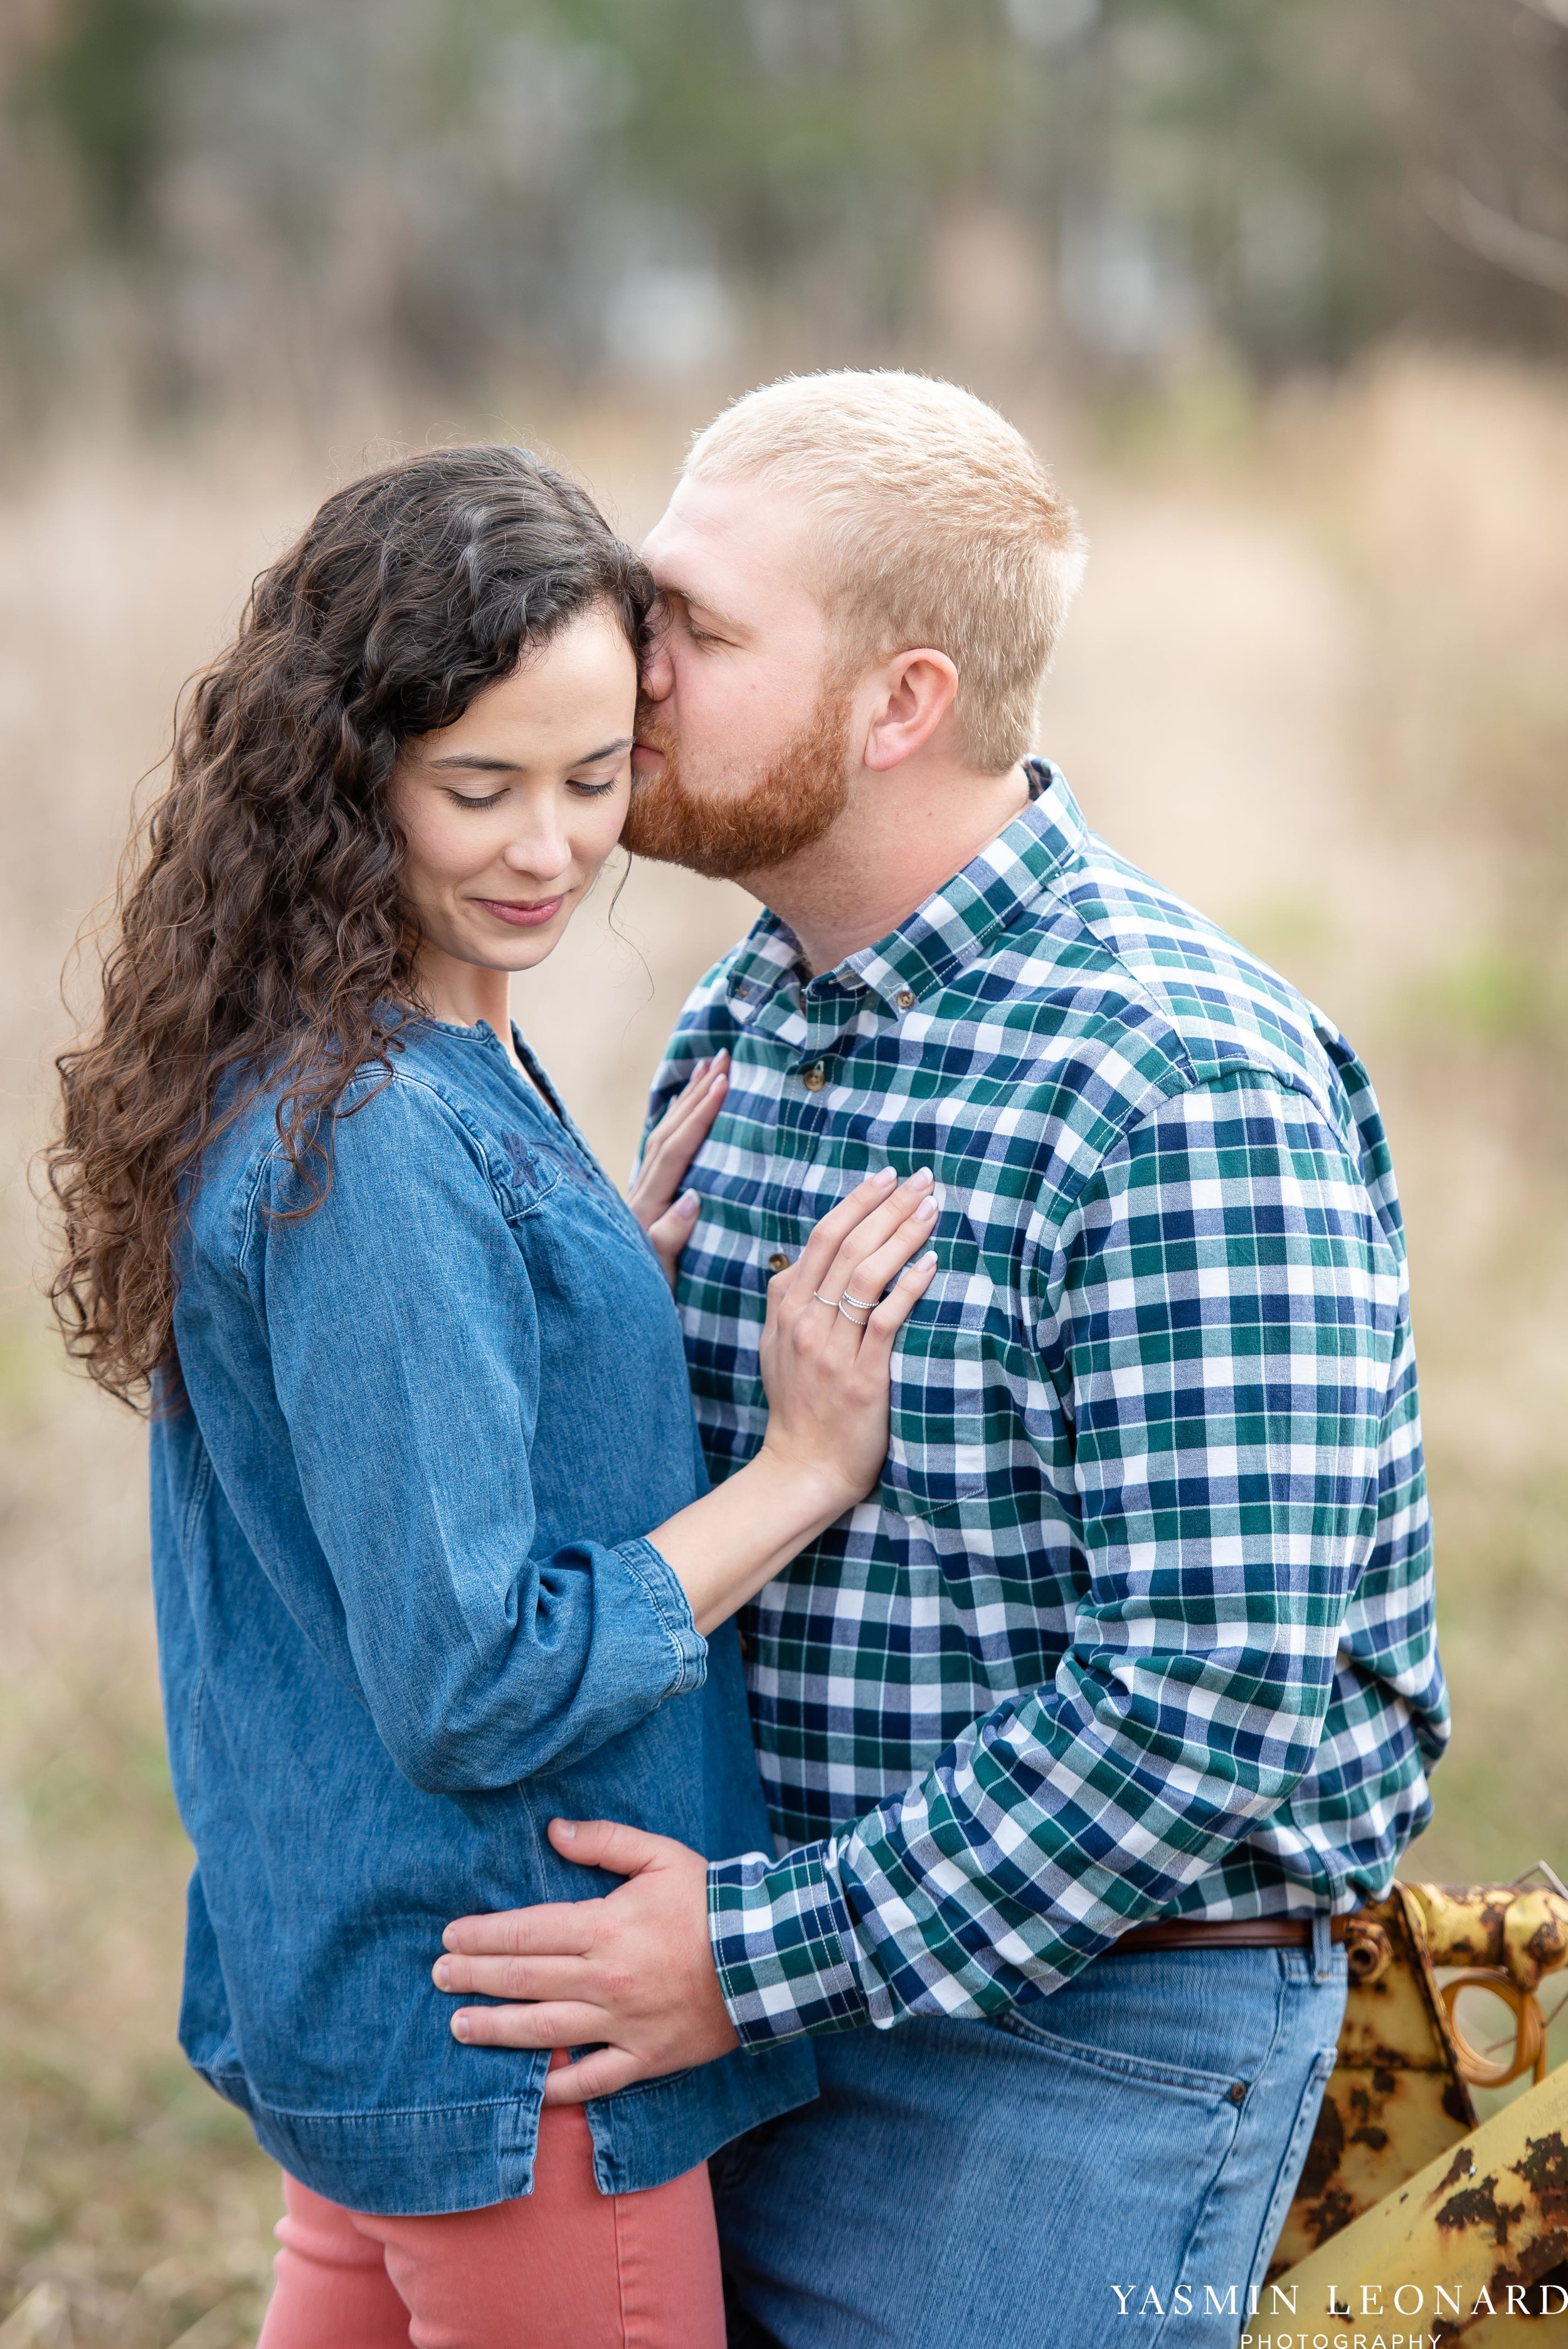 Wallburg Engagement Session - Country Engagement Session - High Point Engagement Session - Outdoor Engagement Session - Engagement Photos - Barn Engagement Photos - NC Photographer - High Point Photographer-1.jpg